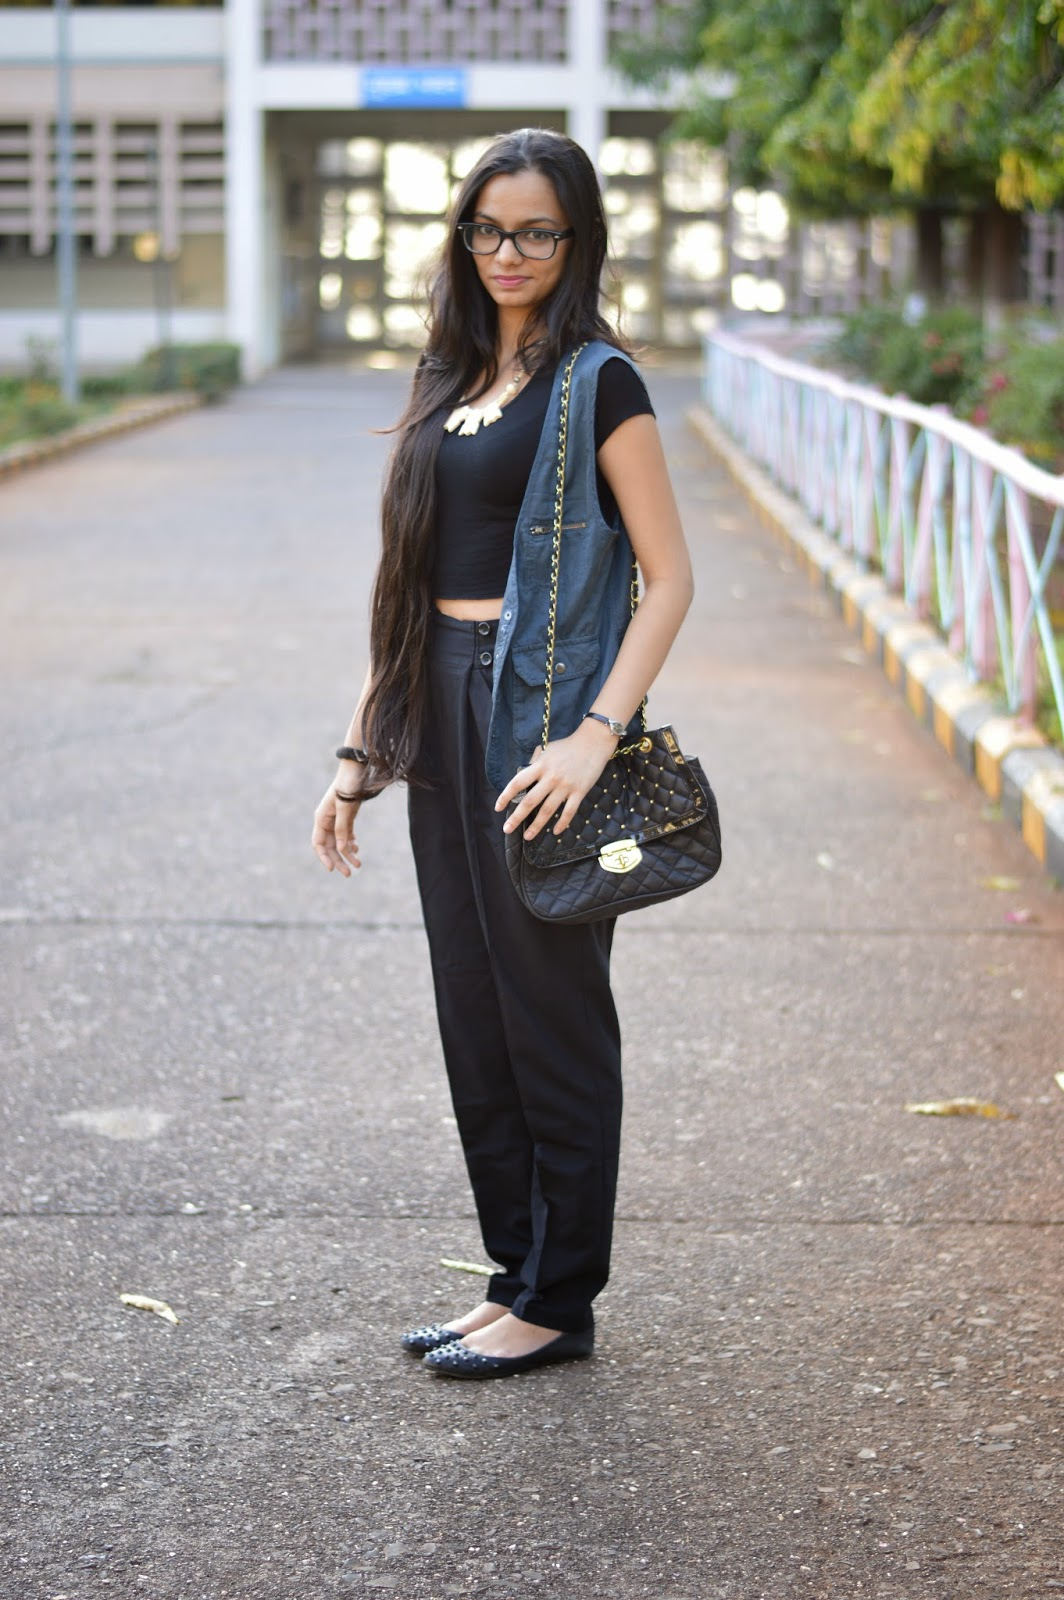 how to wear high waist pants, what to wear to work, asos, online shopping, marks and spencers vest, mumbai street shopping, indan fashion blogger, mumbai streetstyle, how to wear high waisted pants and crop tops, how to style crop tops